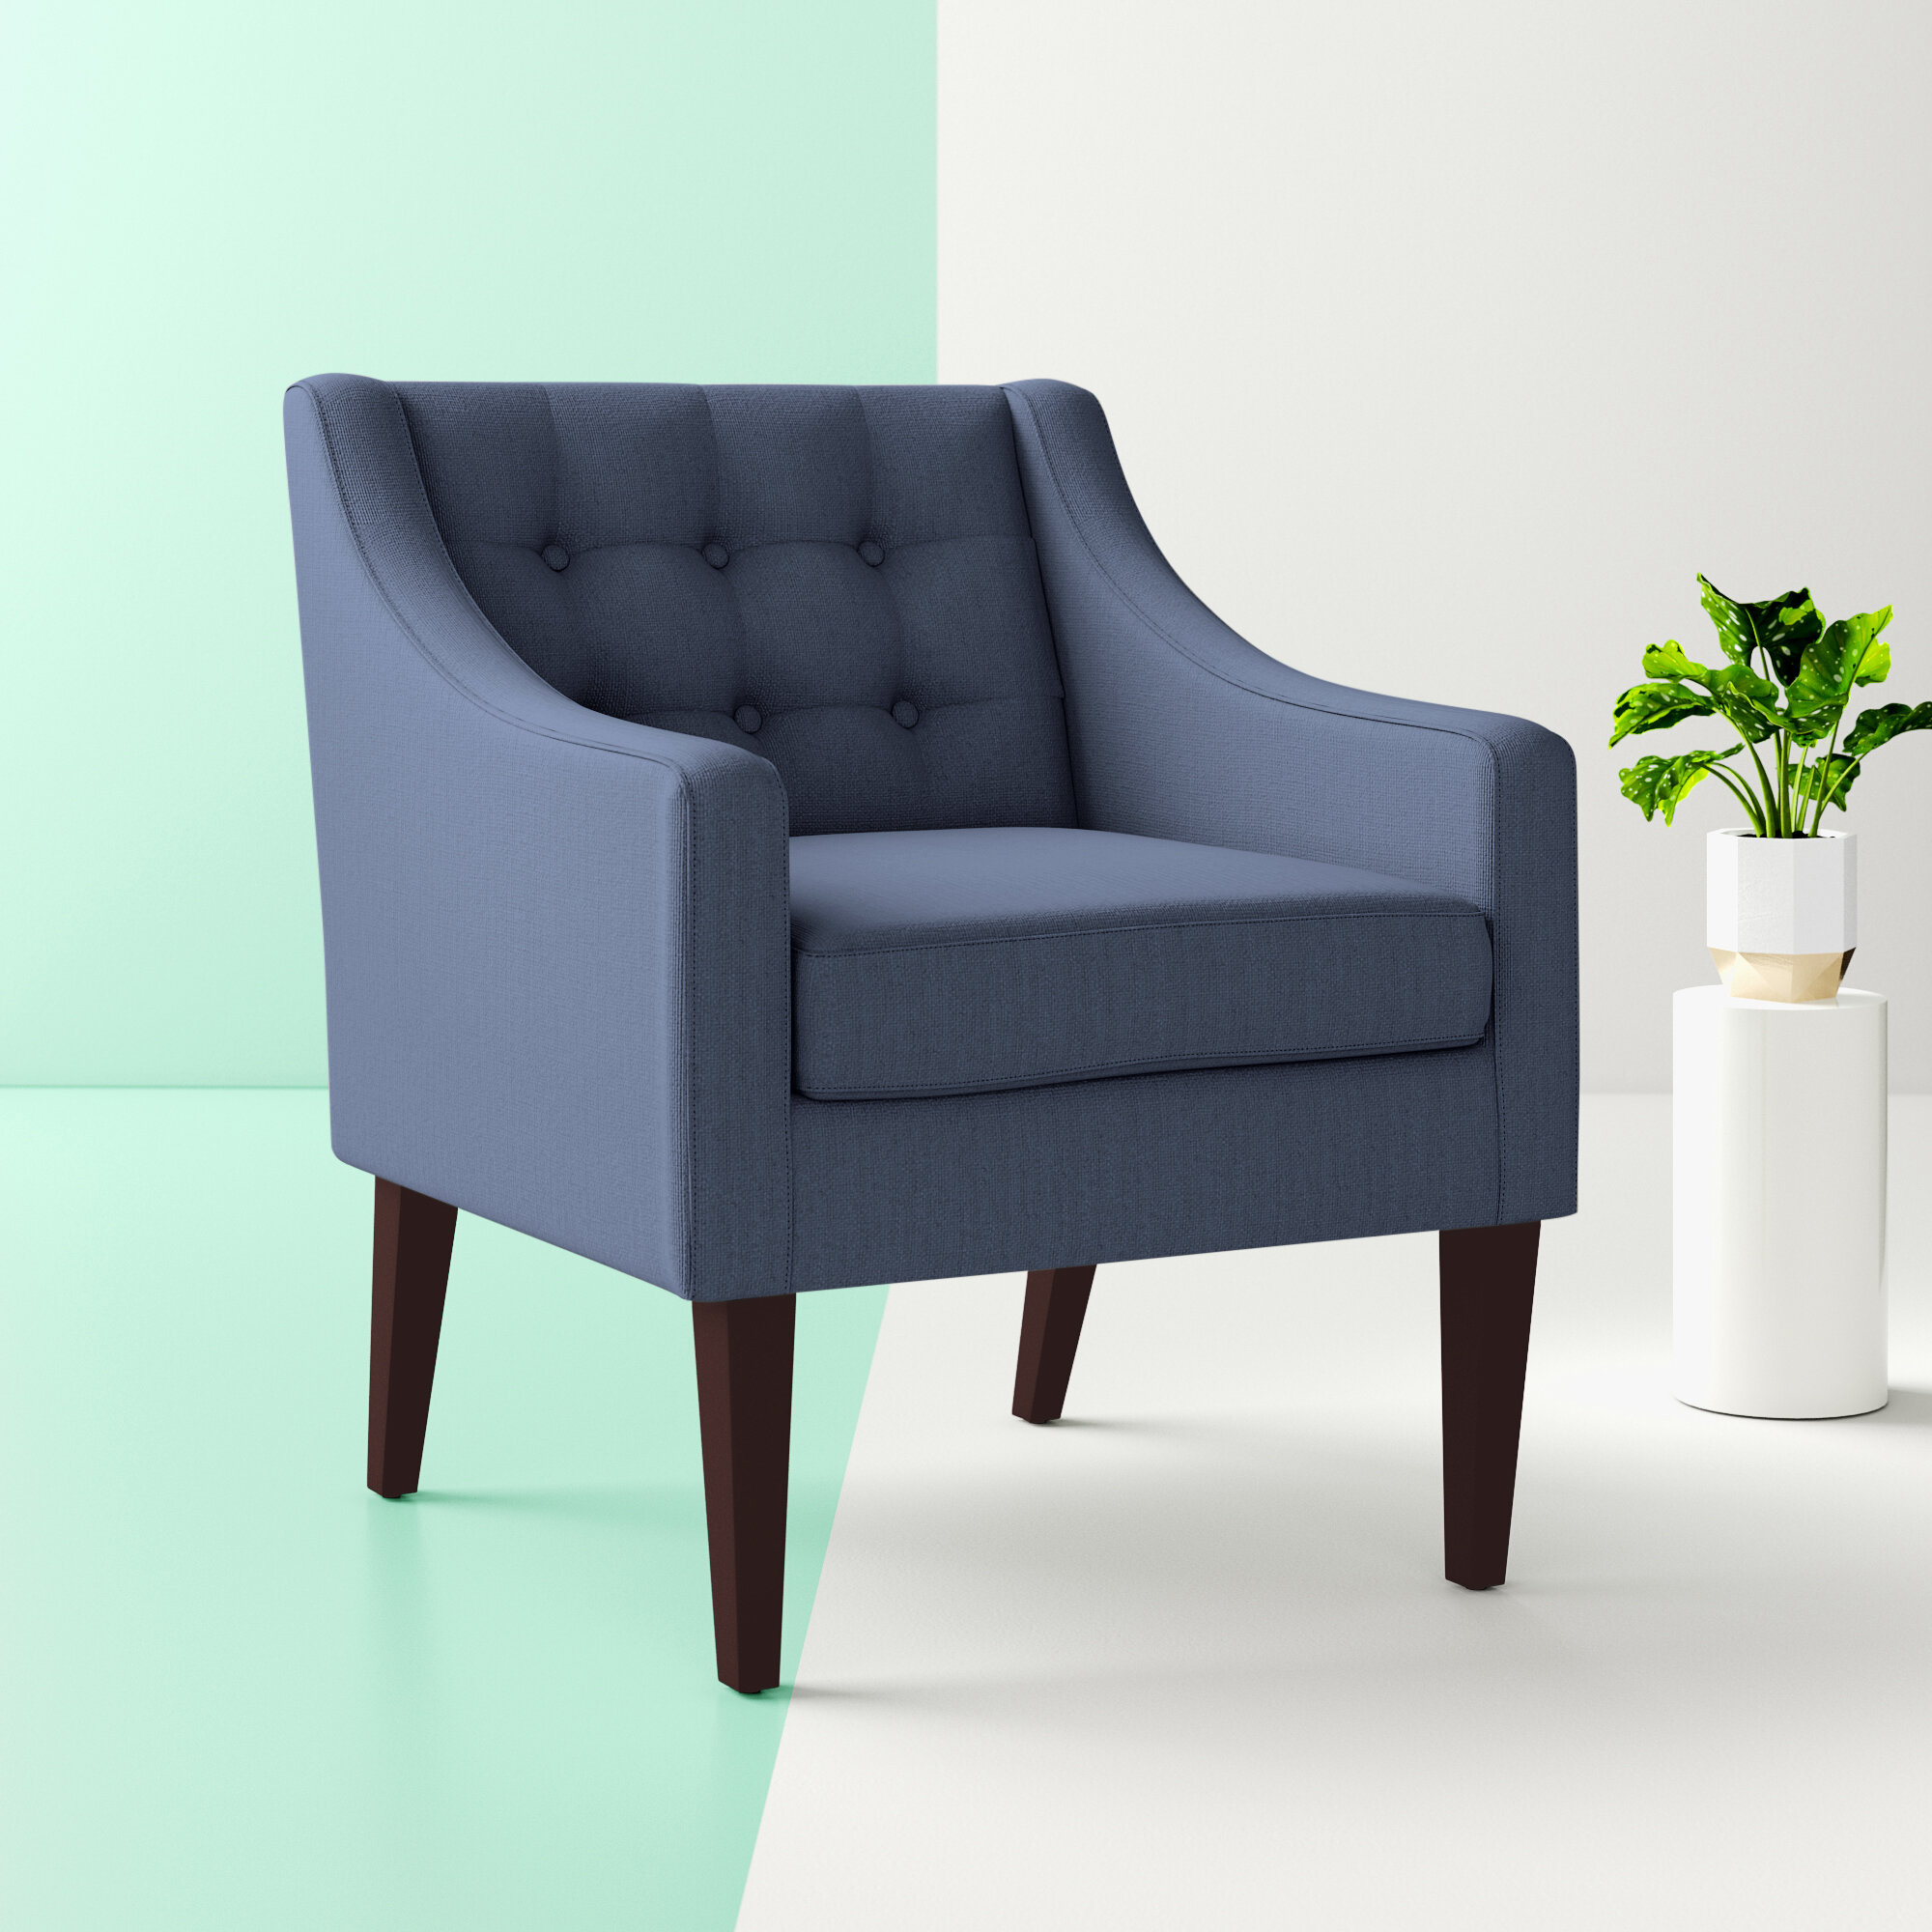 """Hashtag Home Clopton 26"""" W Tufted Polyester Armchair Pertaining To Borst Armchairs (View 3 of 15)"""